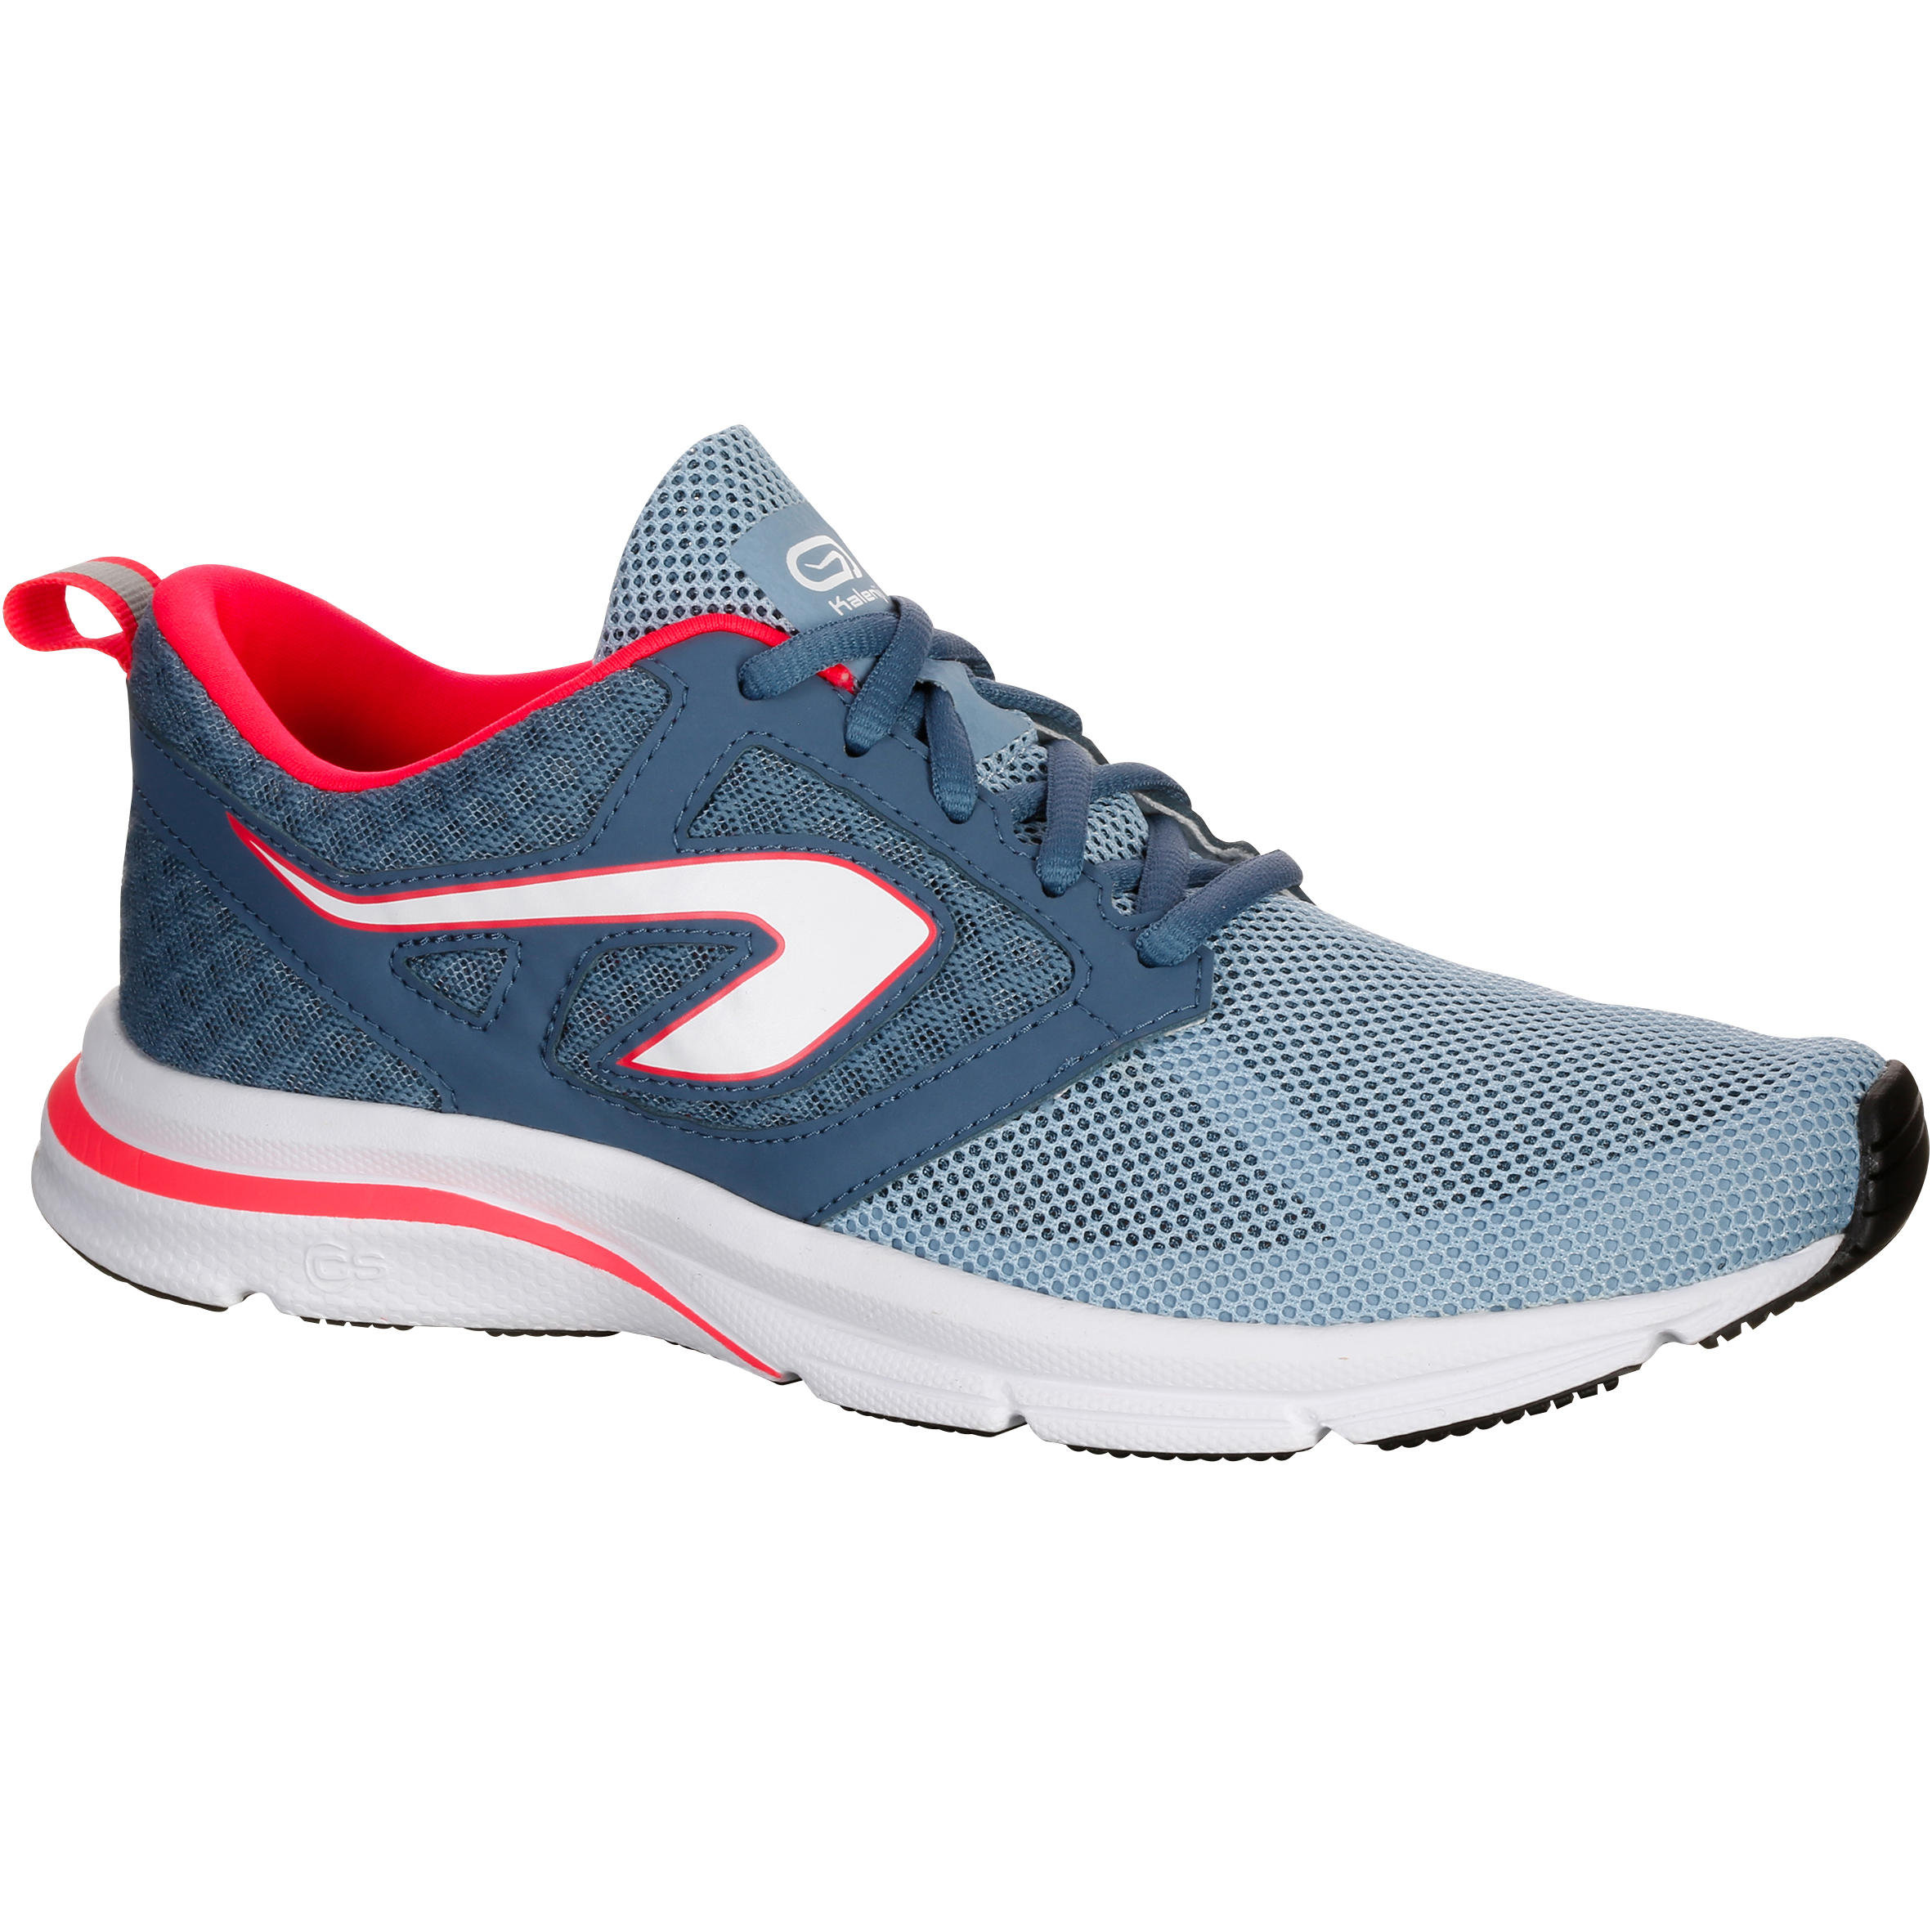 ACTIVE BREATH WOMEN'S RUNNING SHOES - GREY [RATING: 4.5 ★]